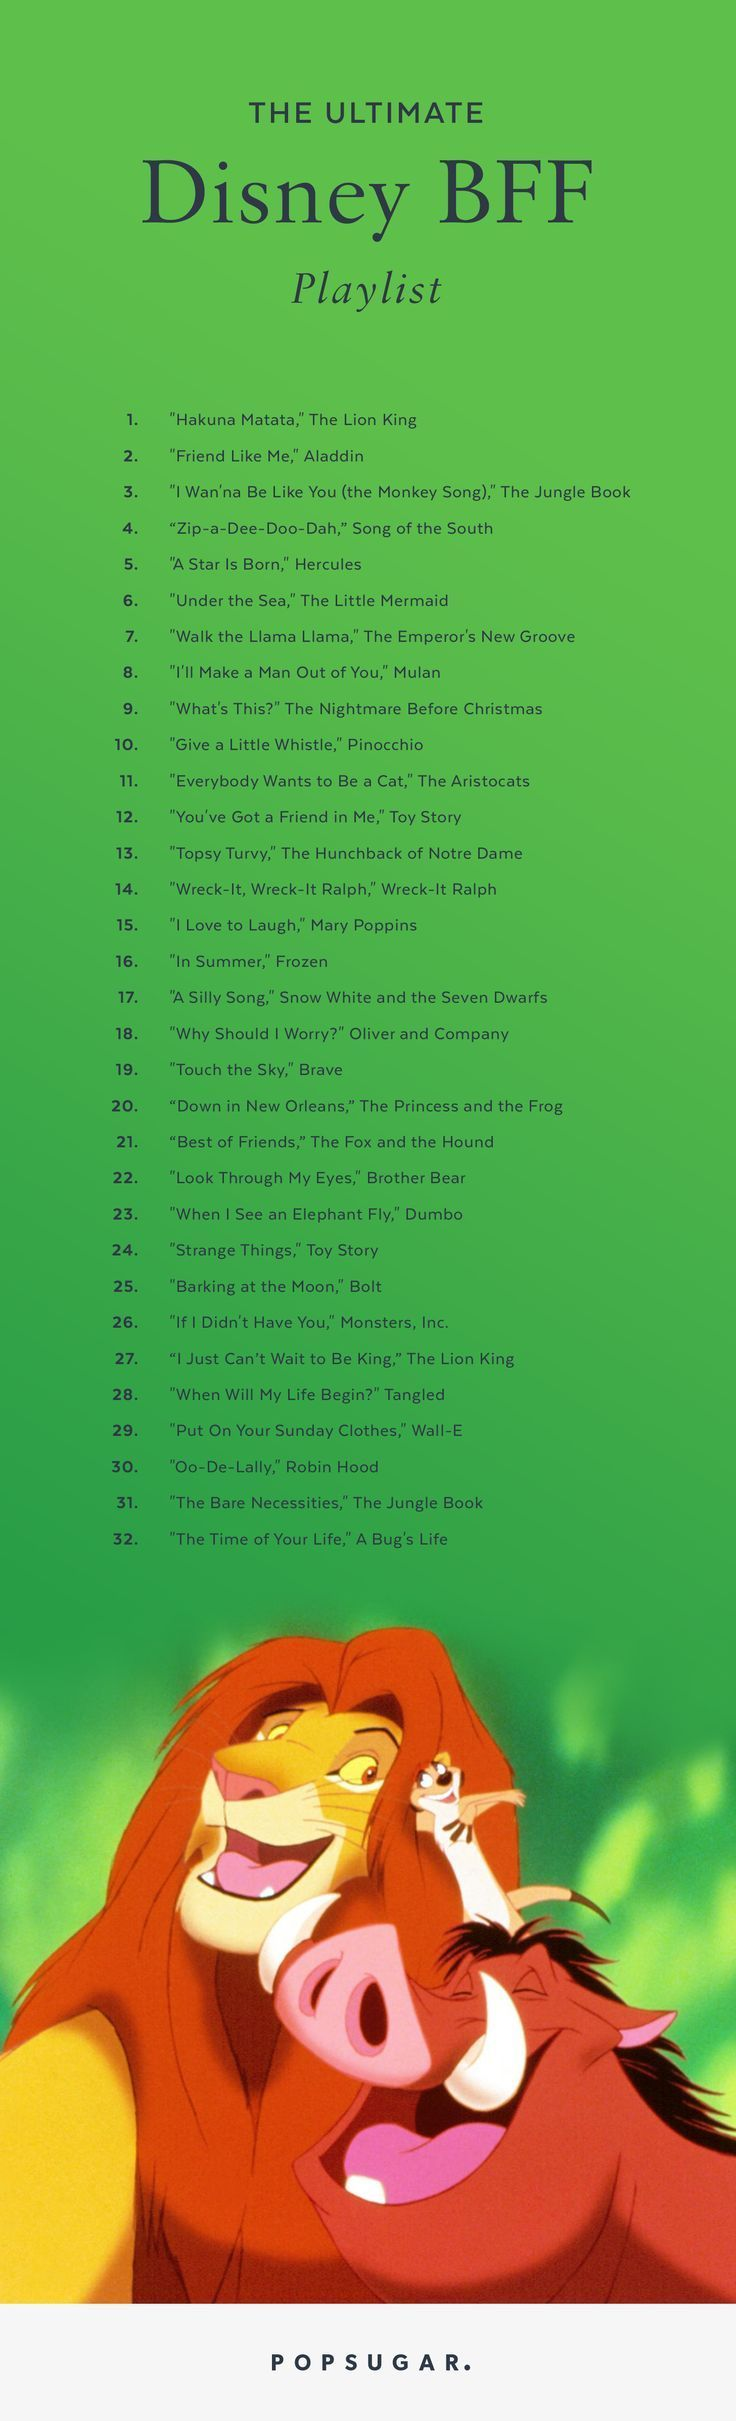 Disney songs are known for their catchy beats impressive